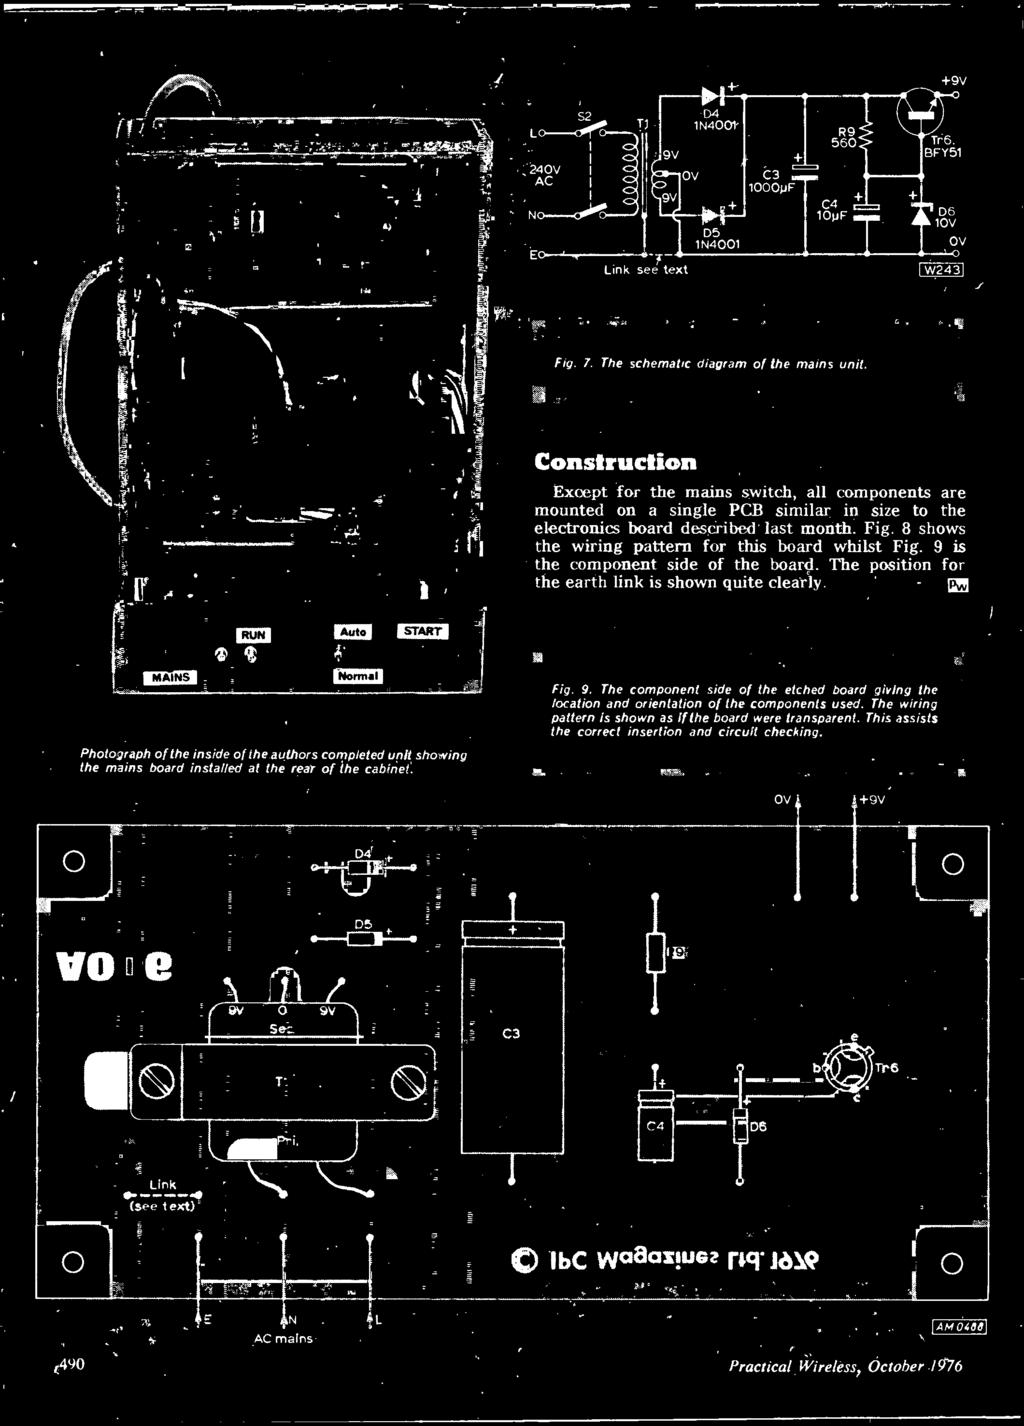 October 40p Project Sheetproject Heall 1rrim Electronics Fl Of Fortune Circuit Diagram Electronic Diagrams Schematics 1115 Photograph The Inside Authors Completed Unit Showing Mains Board Installed At